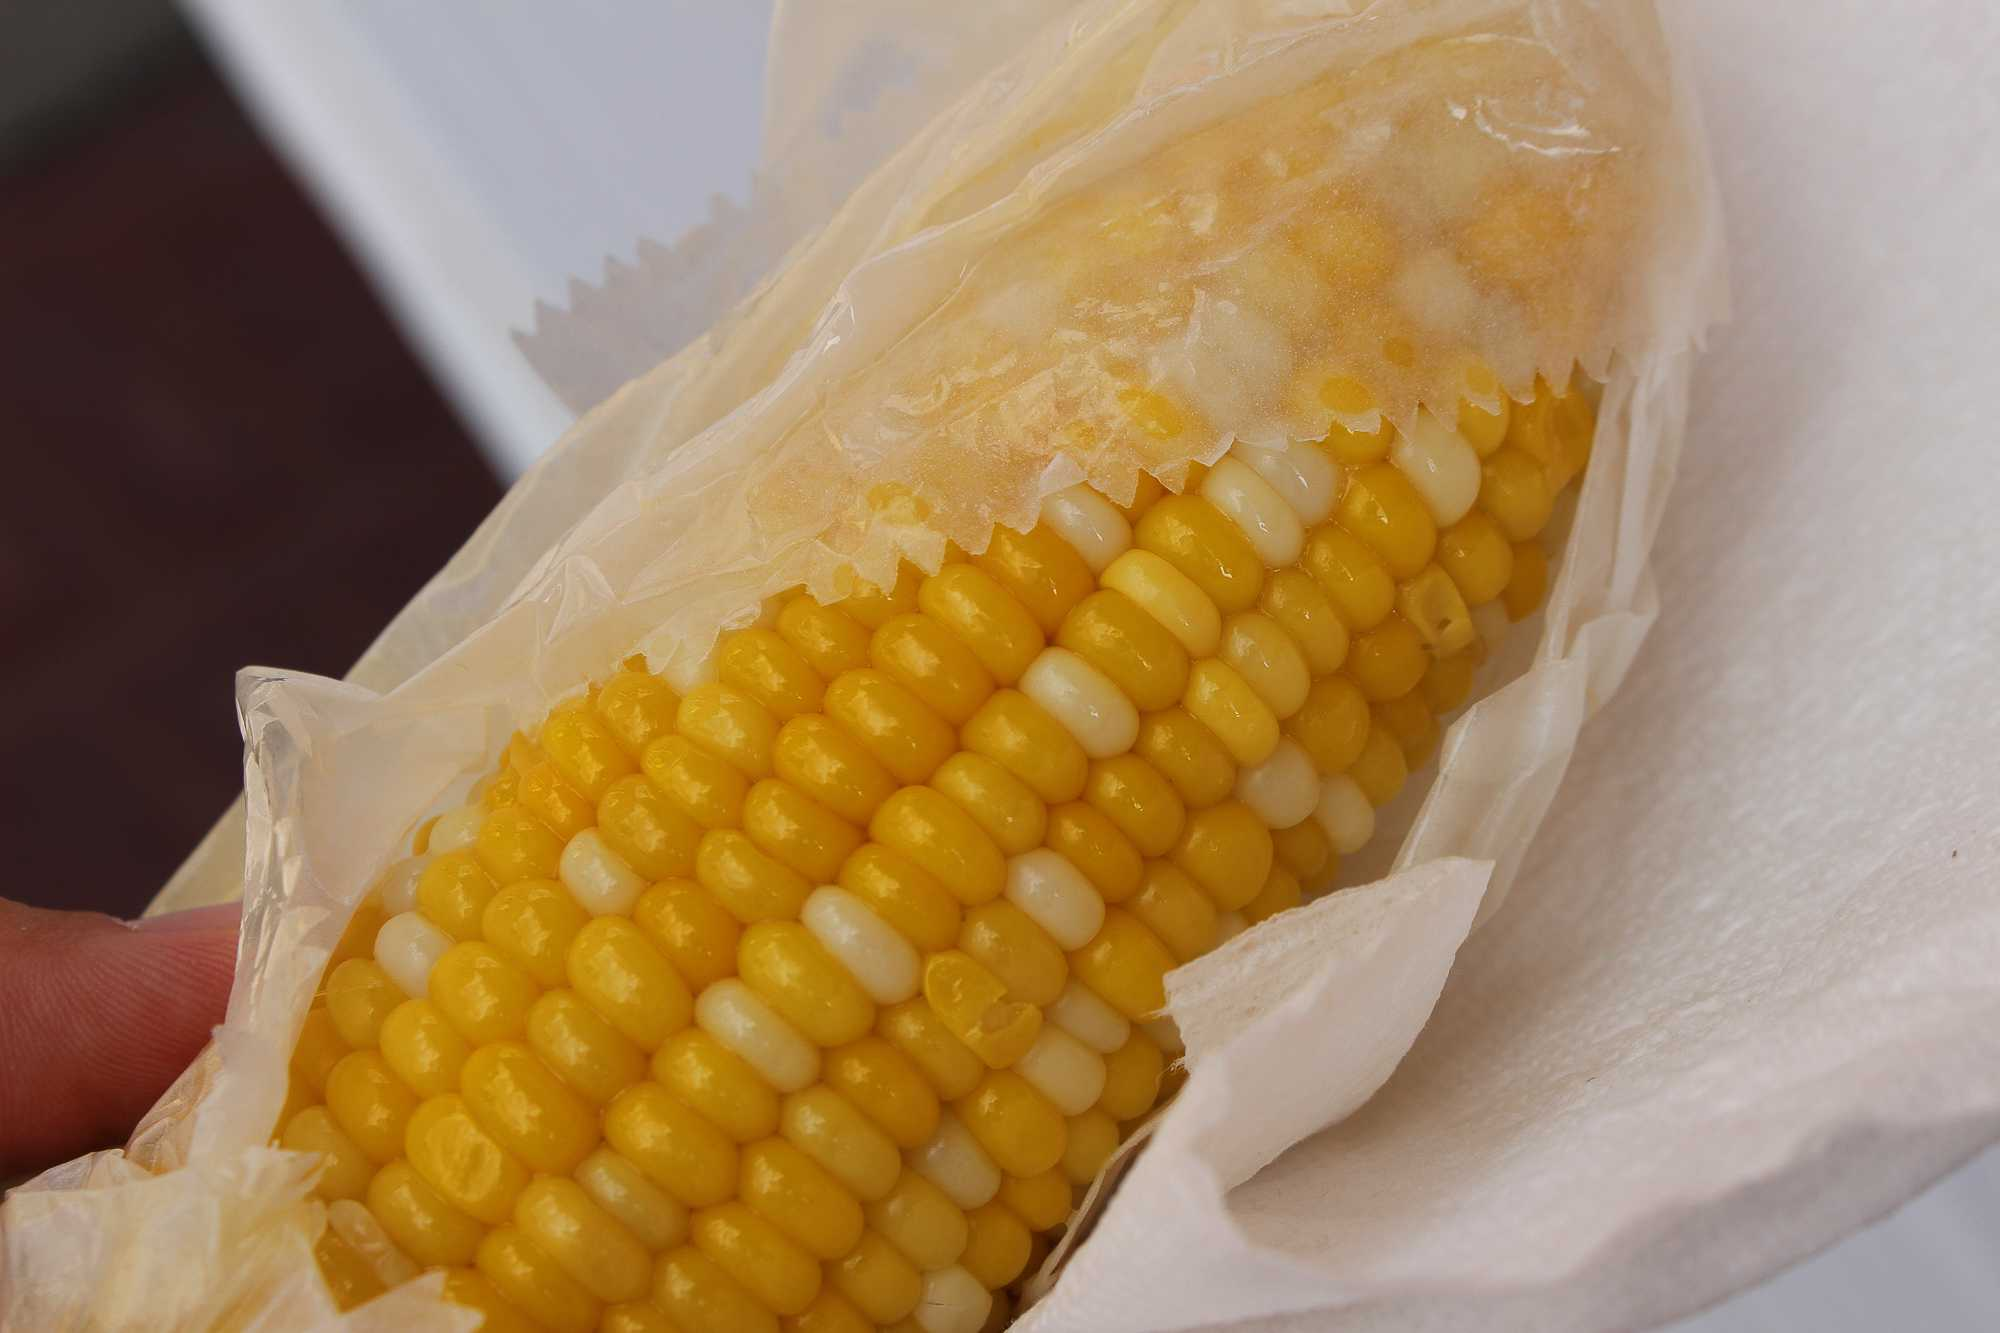 A corn on the cob is unwrapped ready to be eaten at the Urbana Sweetcorn Festival in downtown Urbana on Saturday, Aug. 27